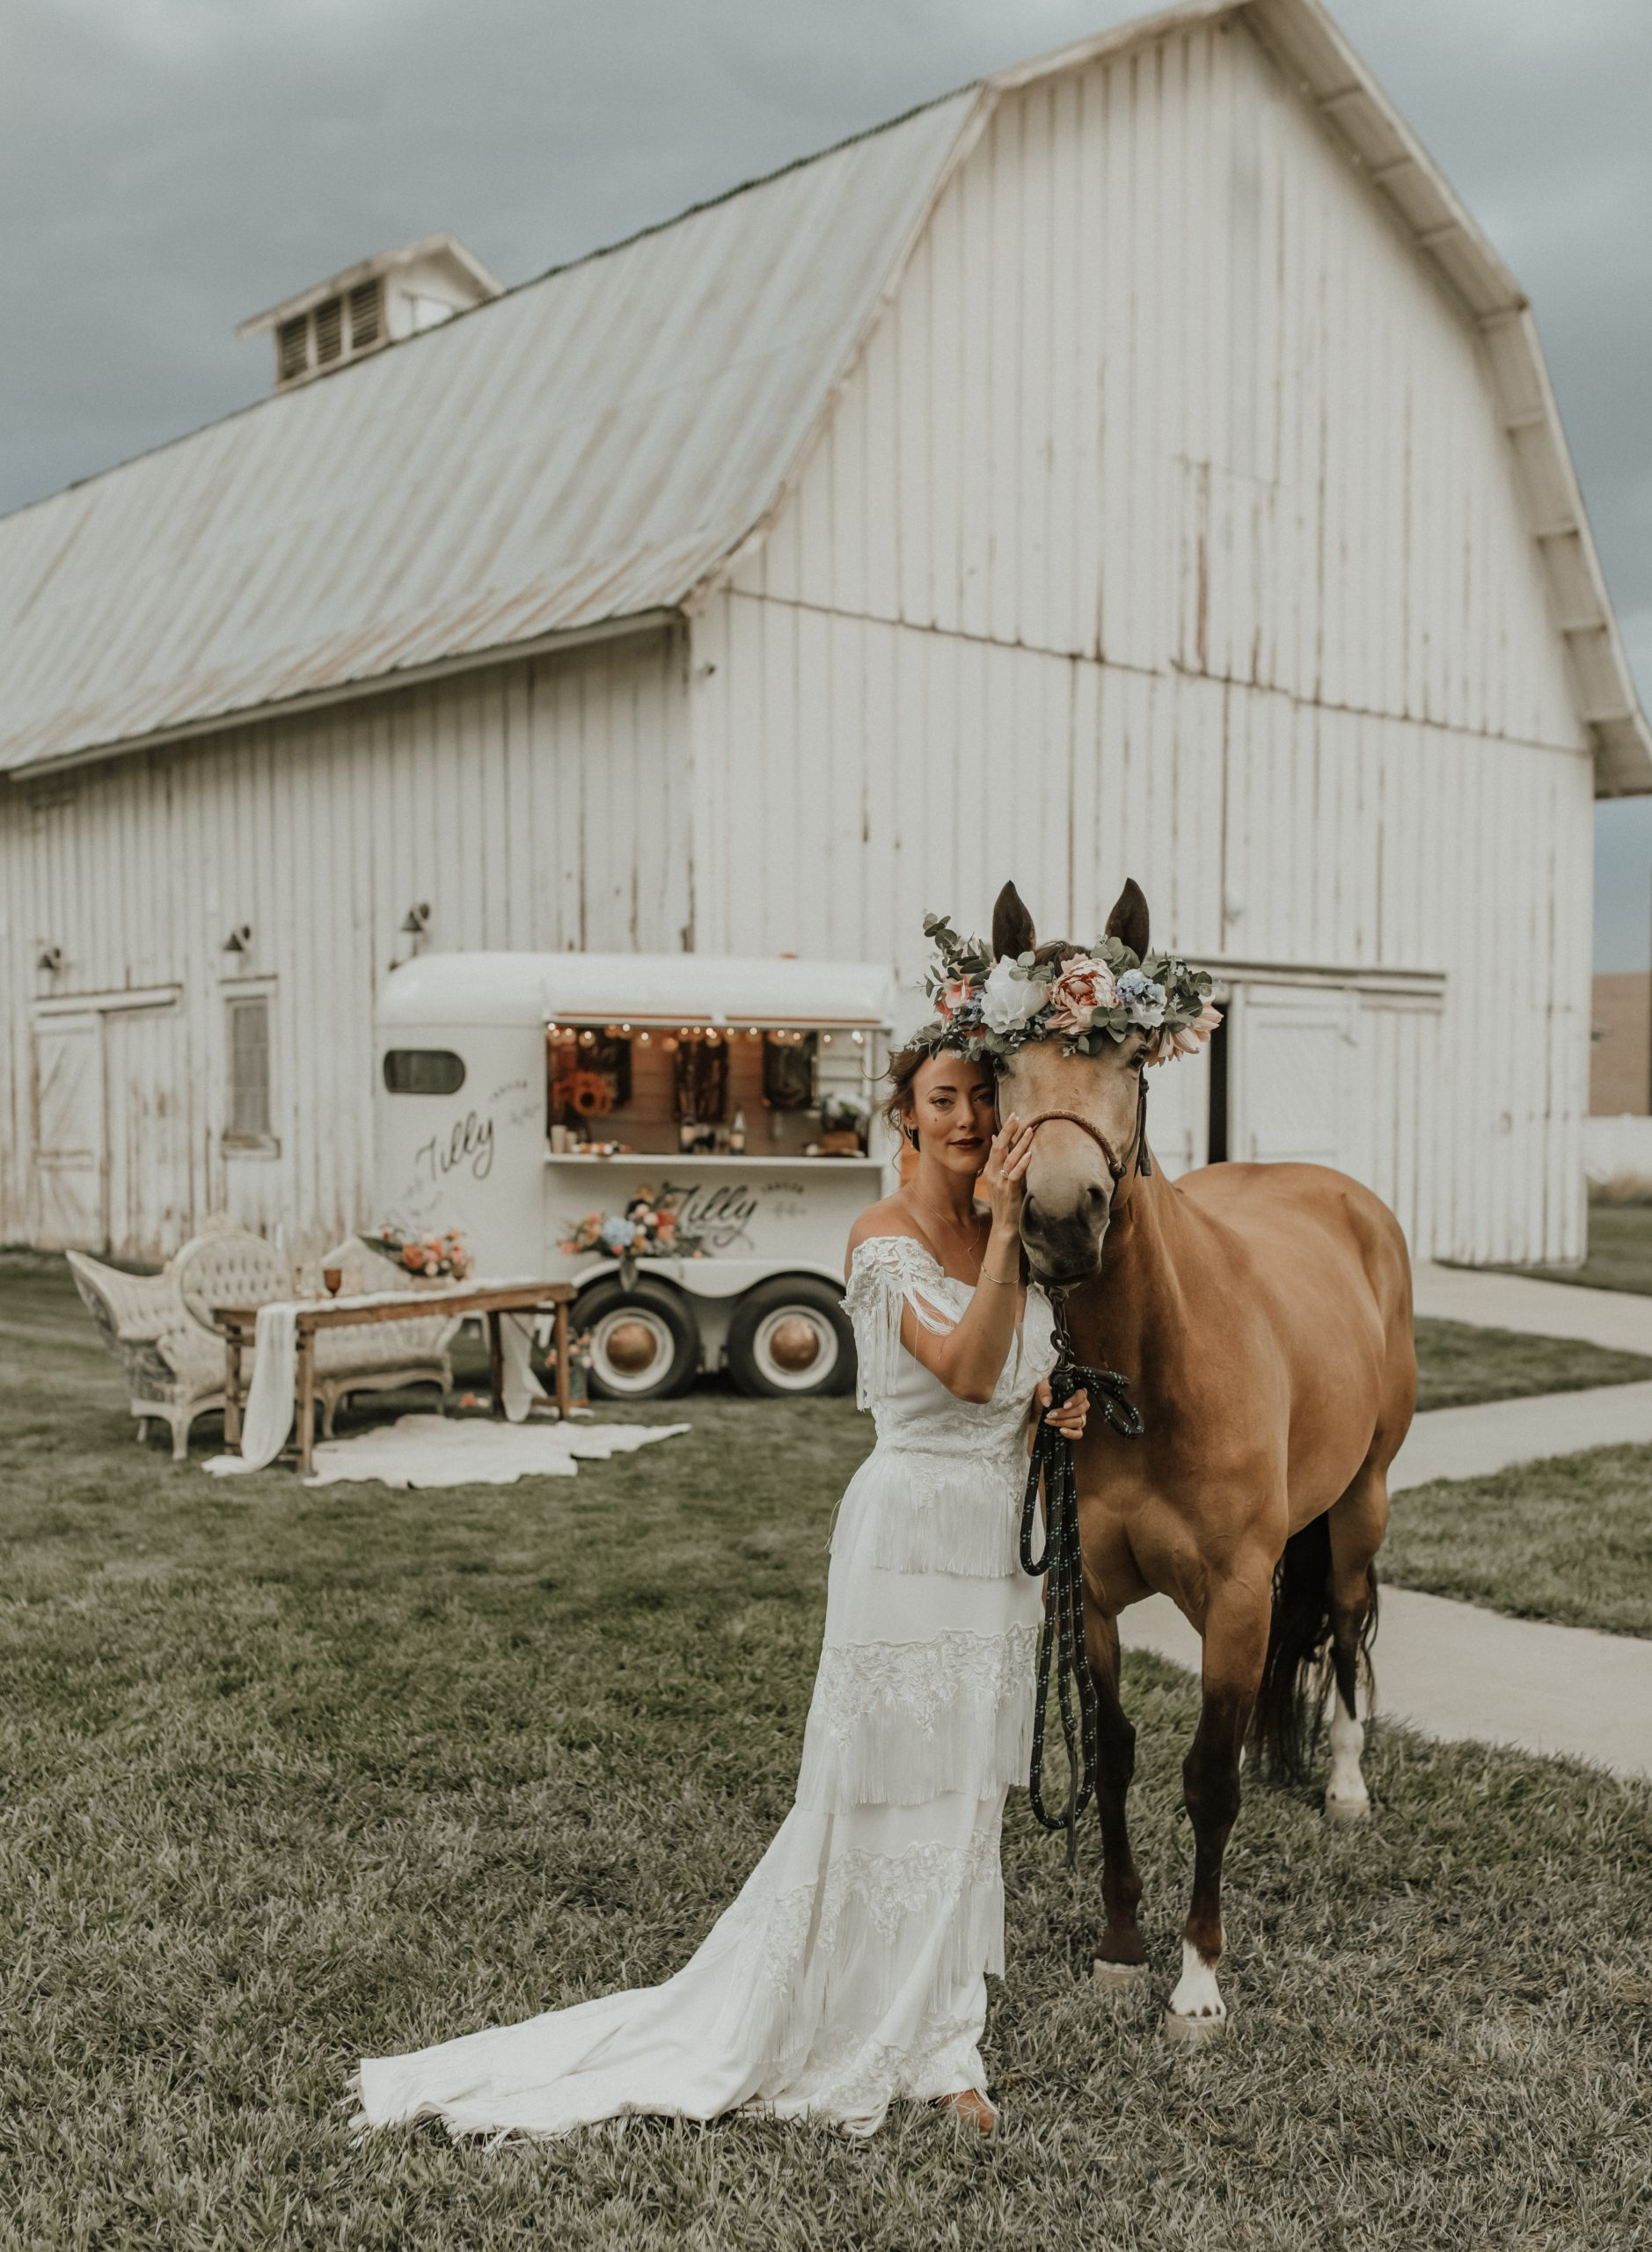 Set at The White Barn Barn at Happy Valley in Nampa, ID, this bride looks like a fairy tale.